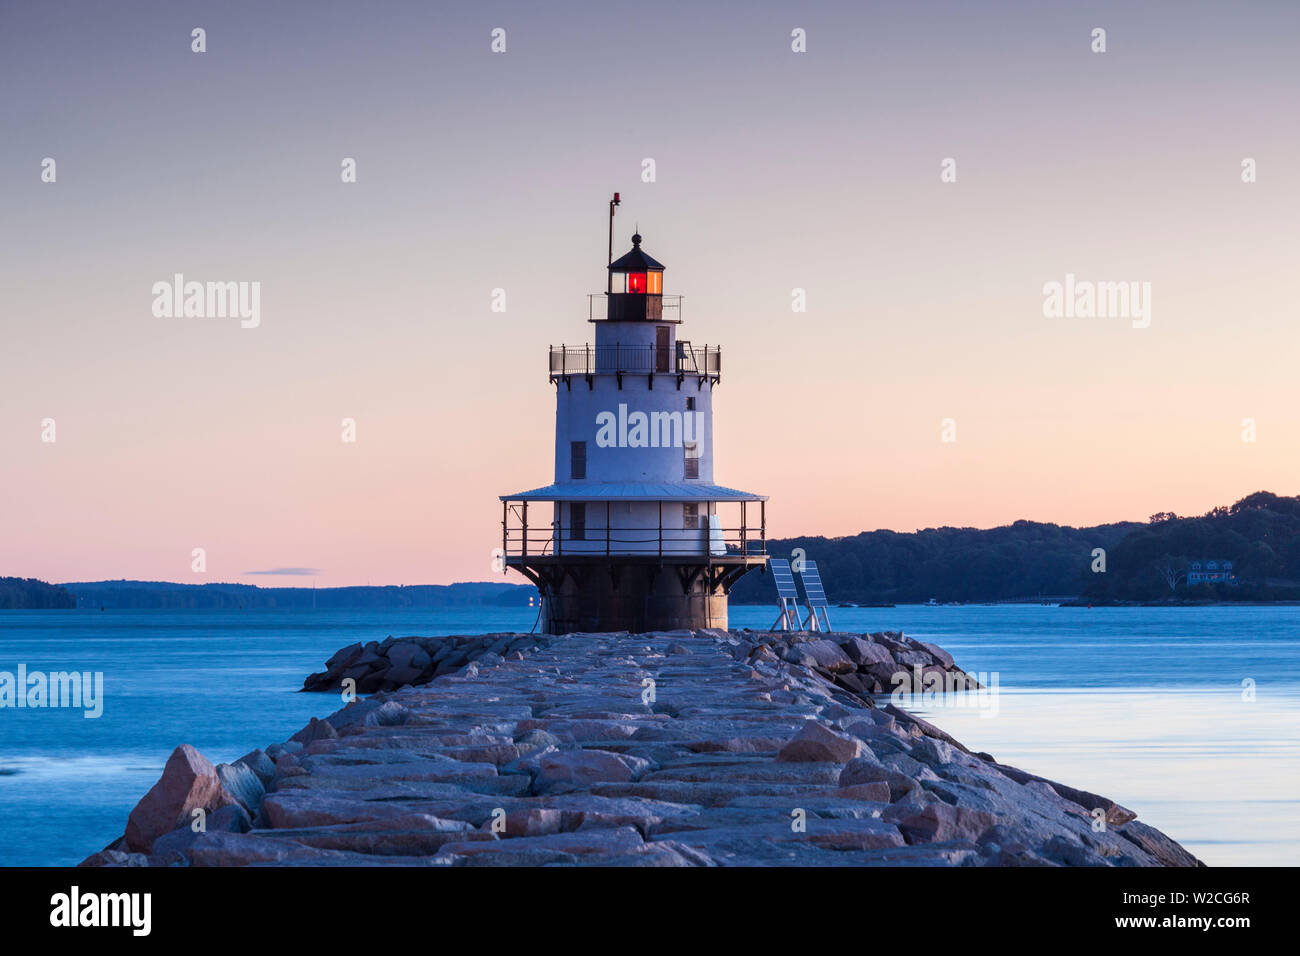 USA, Maine, Portland, Spring Point Ledge Lighthouse, dawn - Stock Image